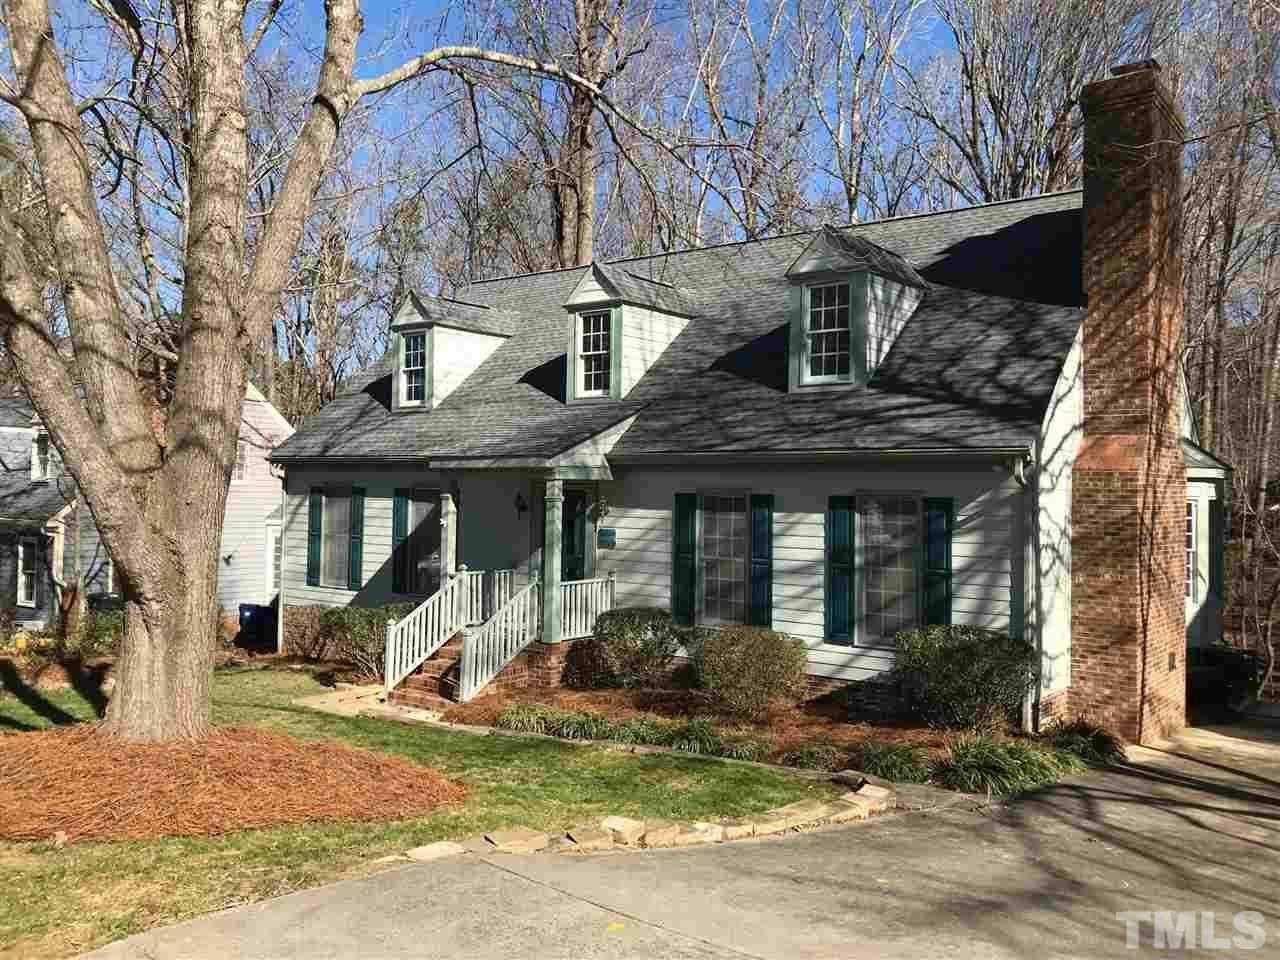 000 Confidential Ave. Raleigh, NC 27613 | MLS 2228721 Photo 1